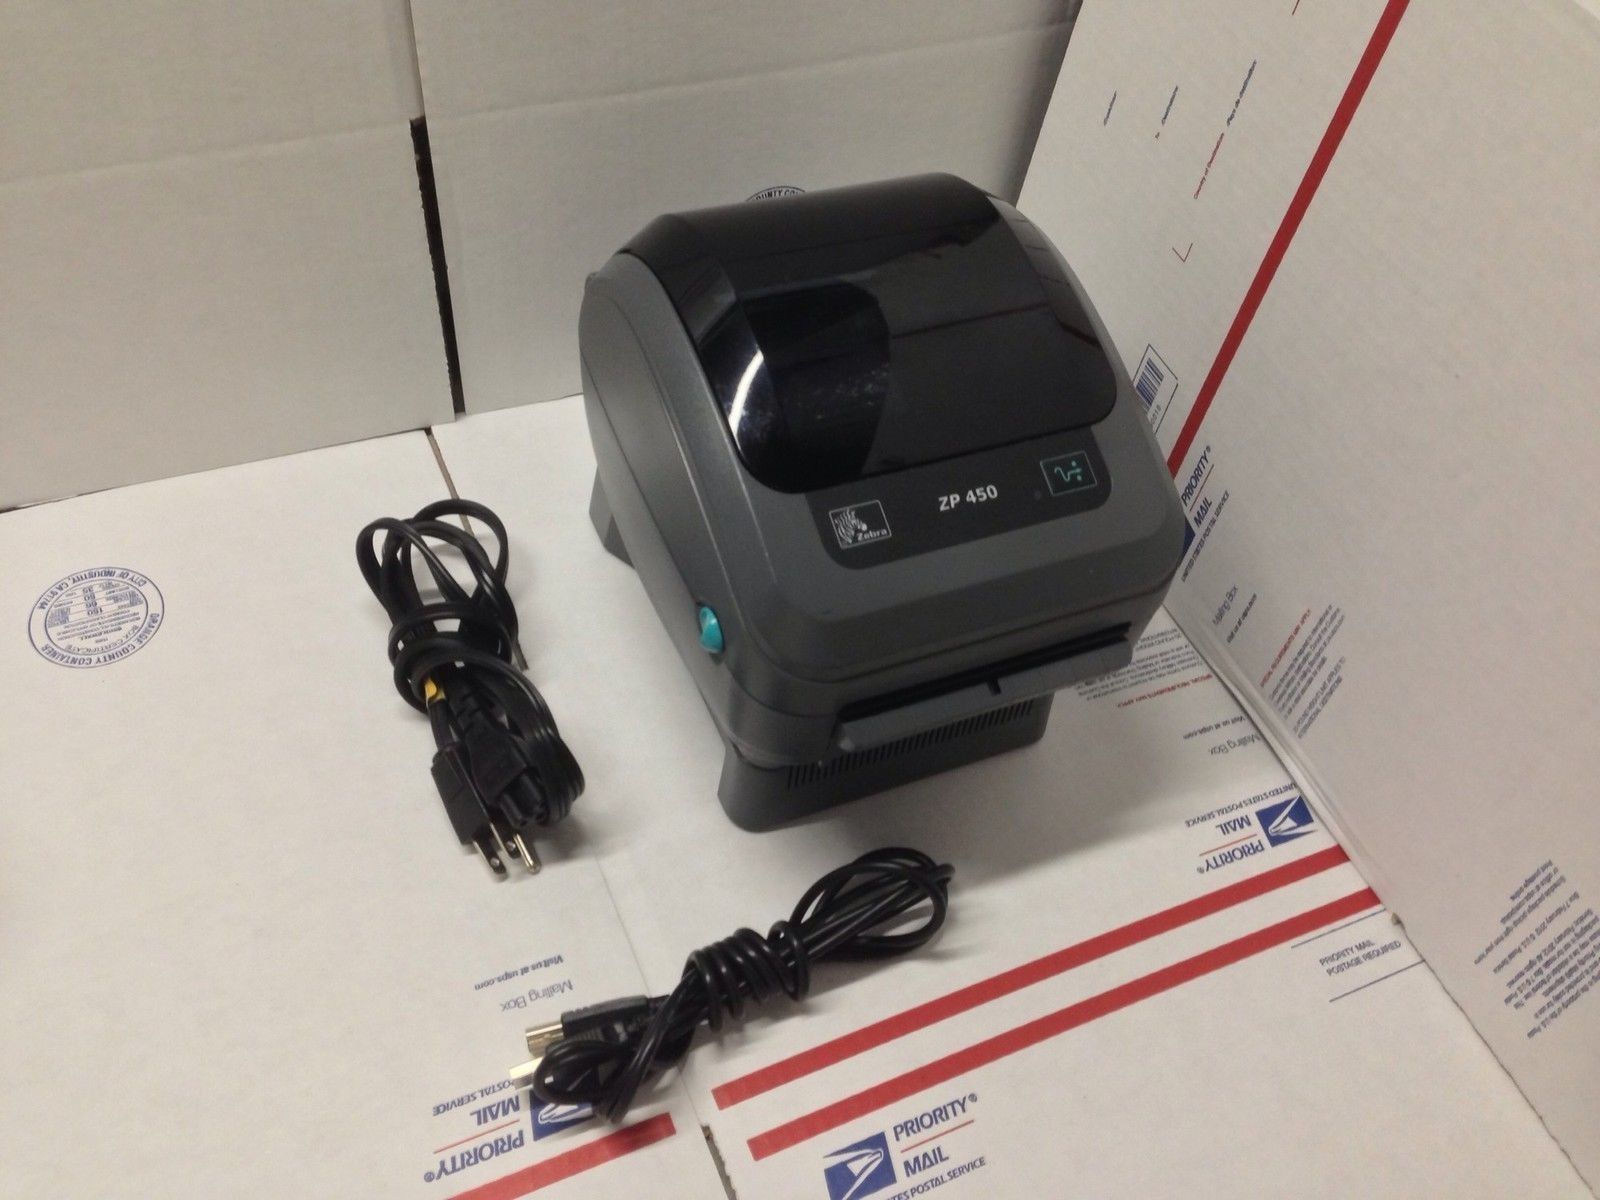 Zebra ZP450 Thermal Label Printer With 250 and similar items